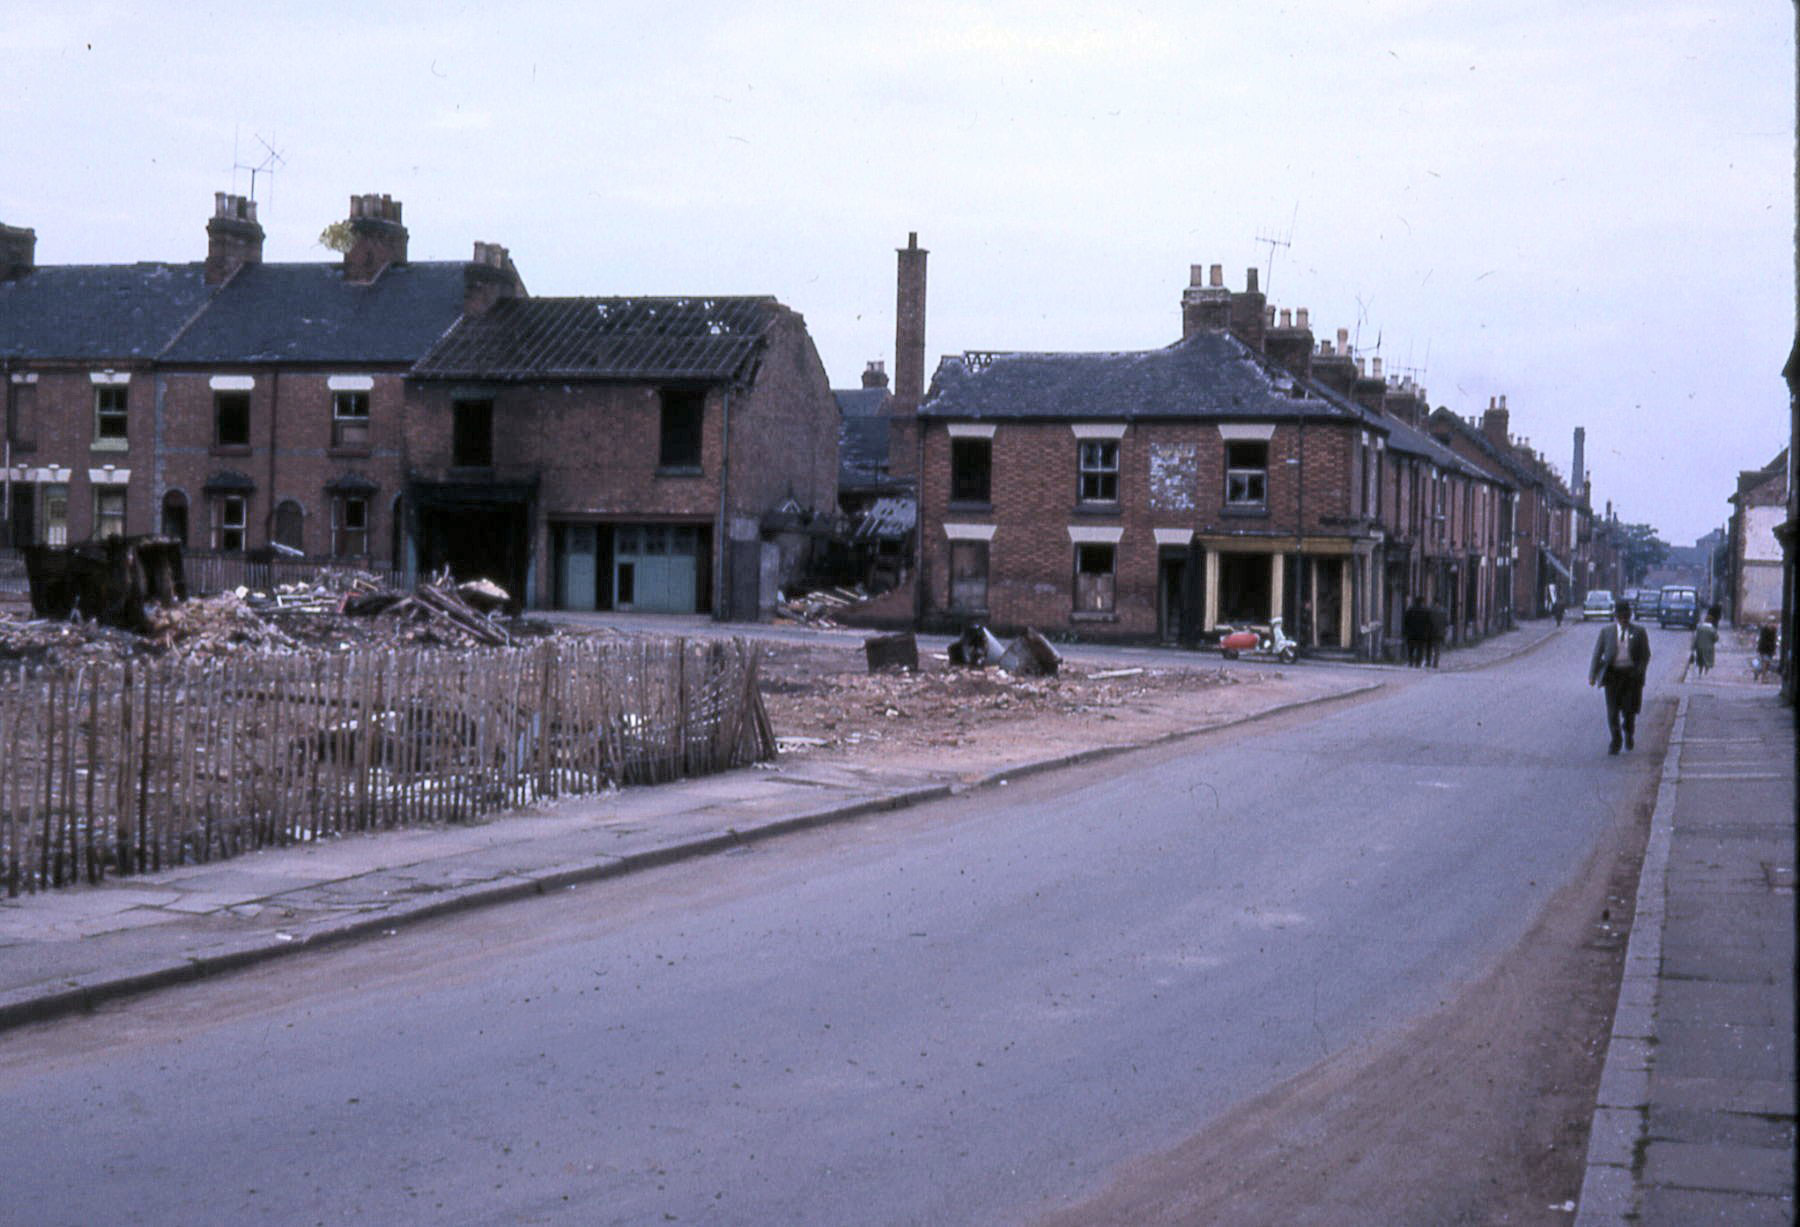 Street scene, one side of the road demolished.